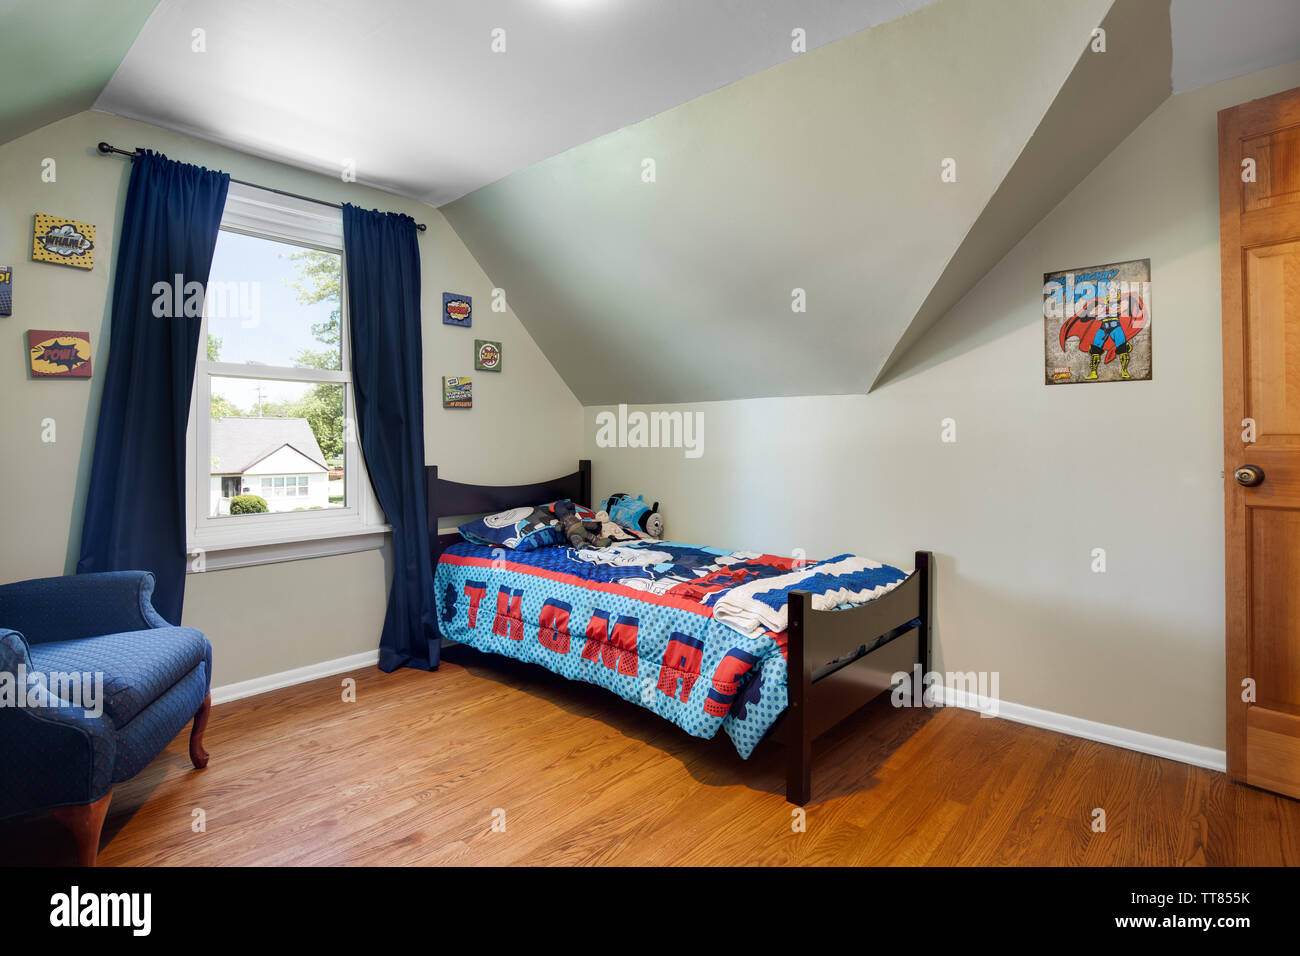 A young boy\'s room with a Thomas the Train bed set, a blue ...